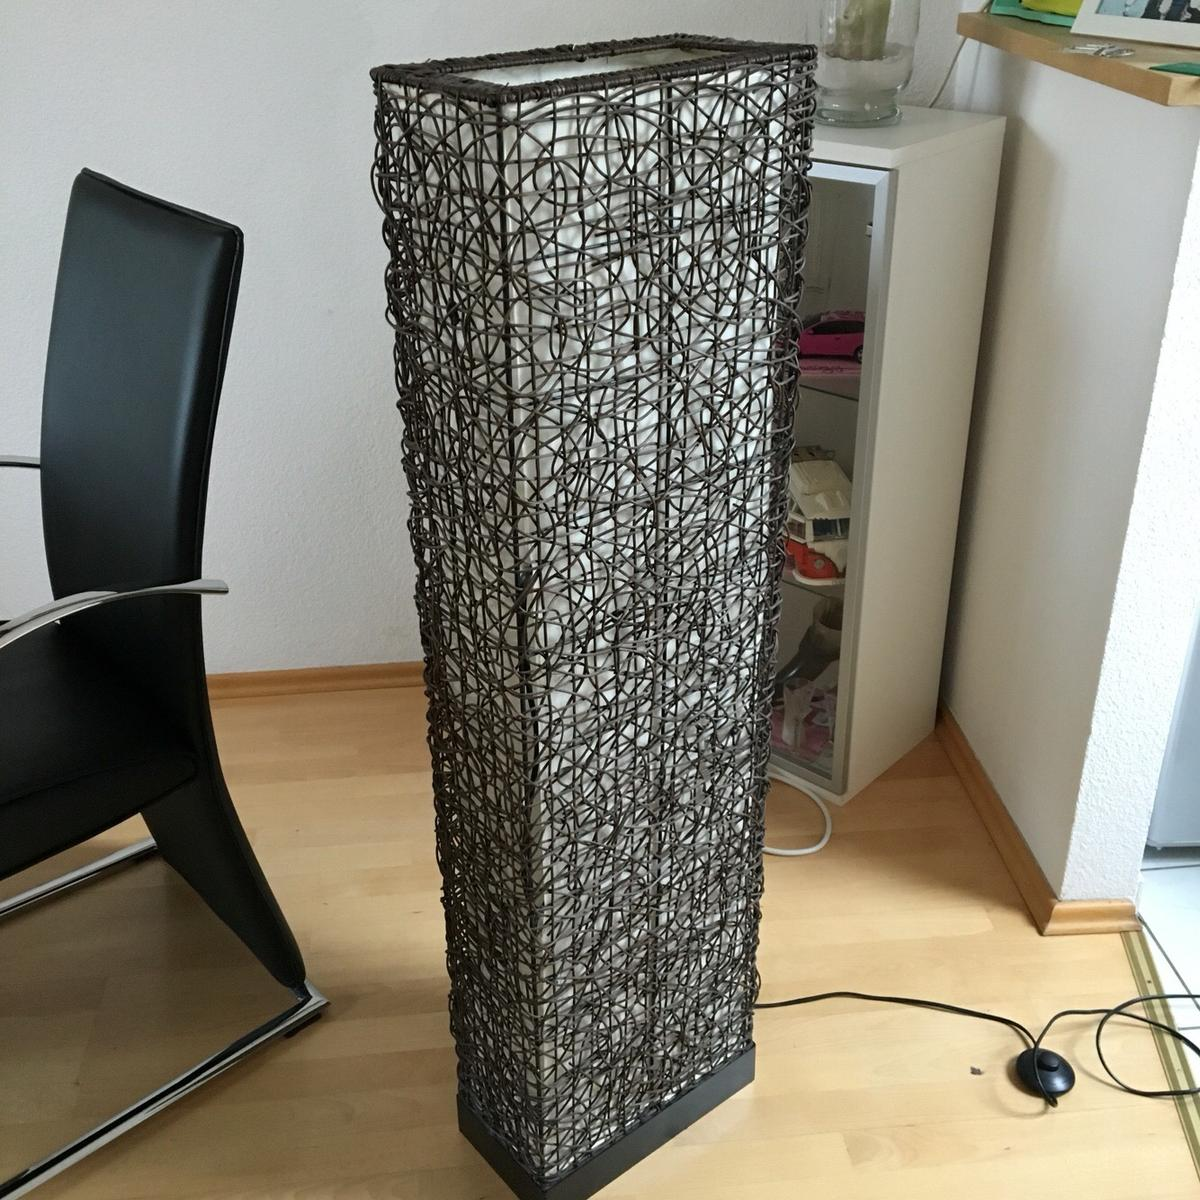 Rattan Stehlampe In 01307 Dresden For 20 00 For Sale Shpock